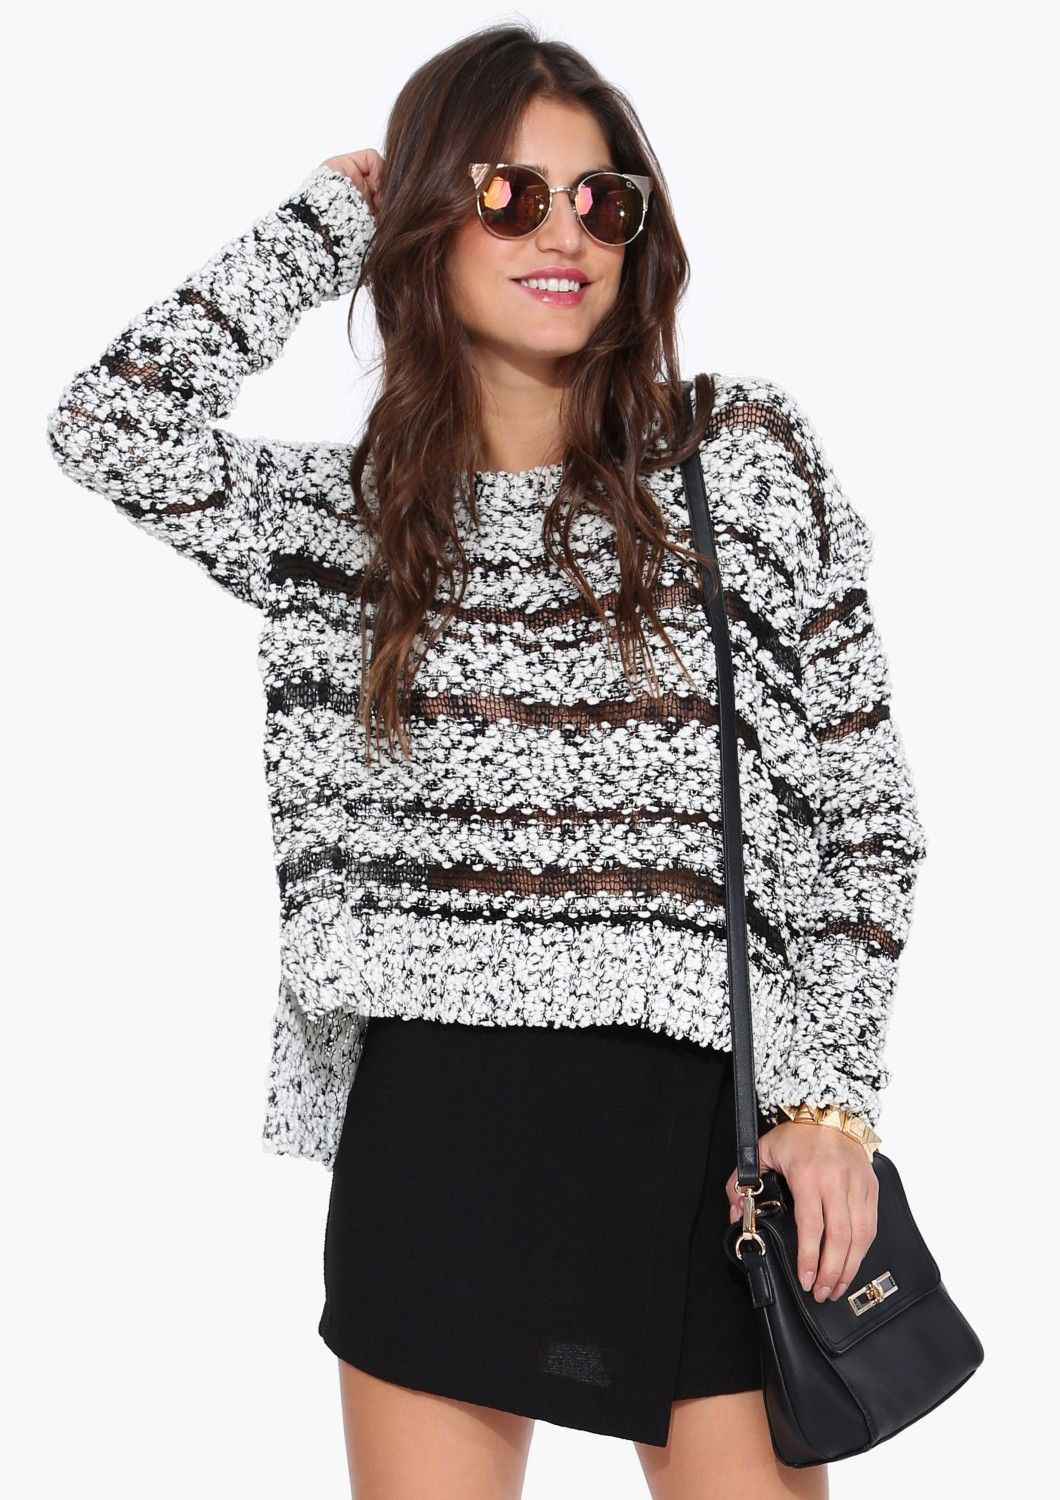 Scruff Knit Sweater in Black/white Necessary Clothing